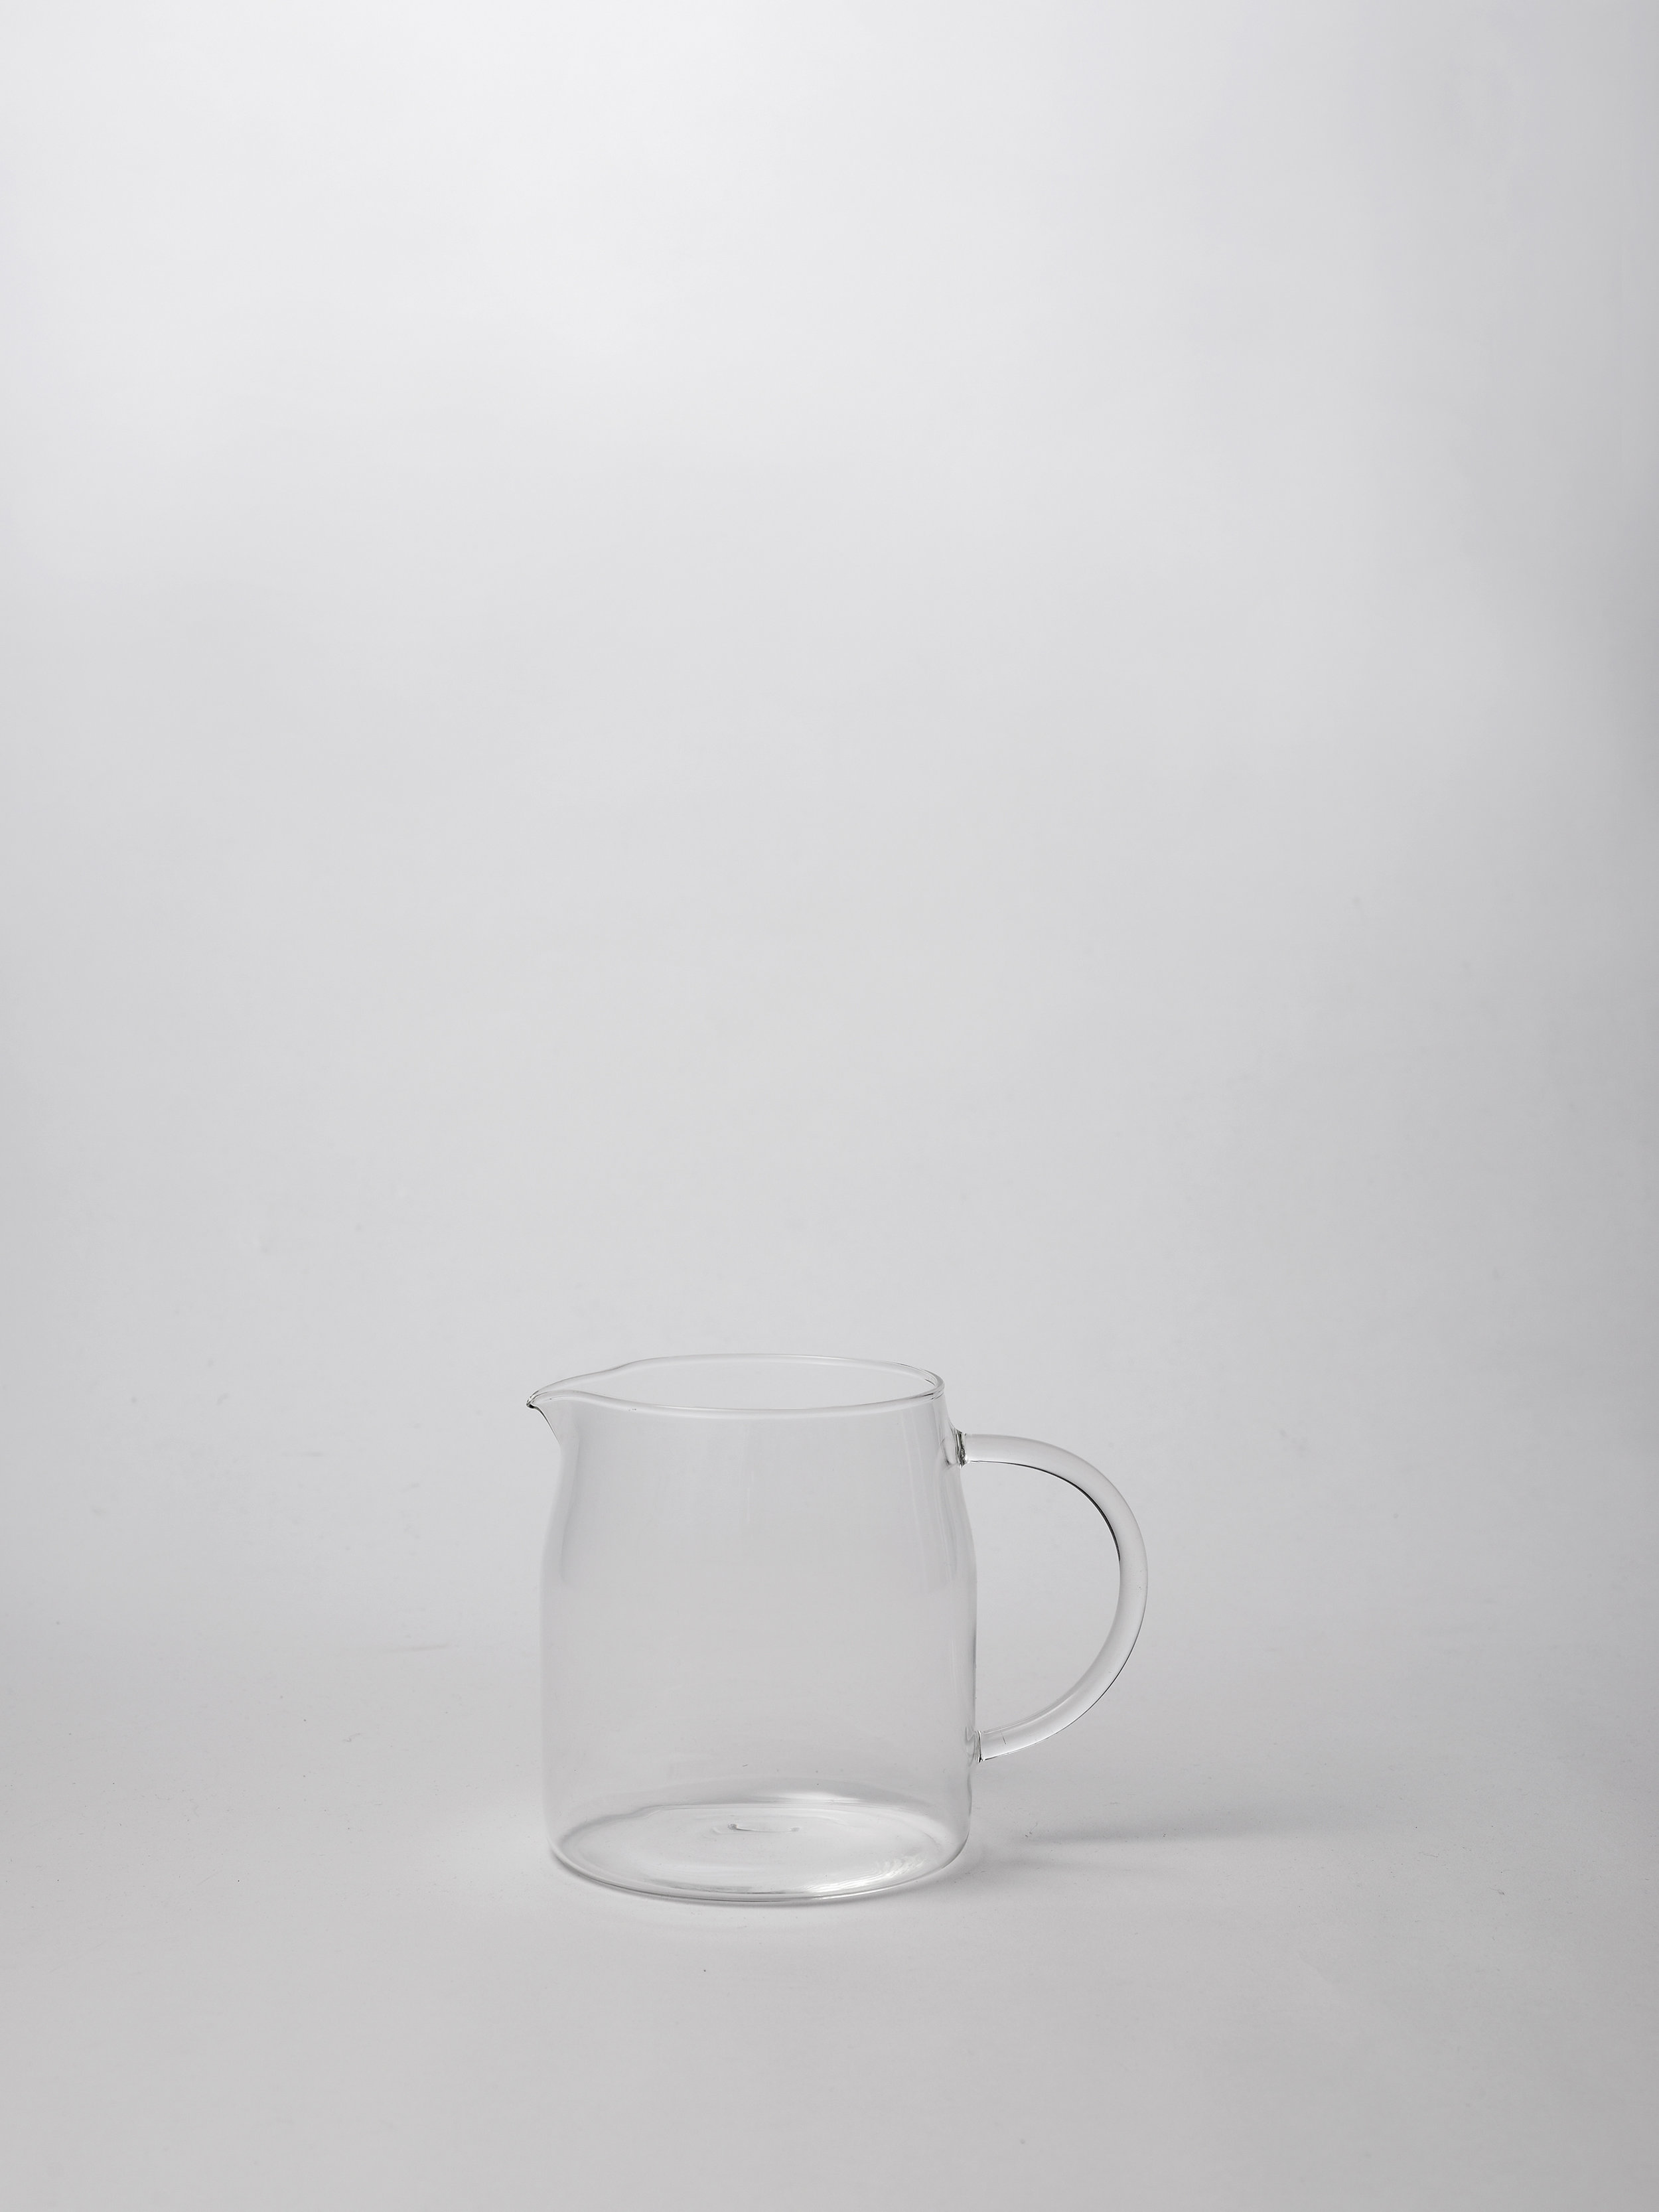 Penguin Low Jug With Handle $39.90